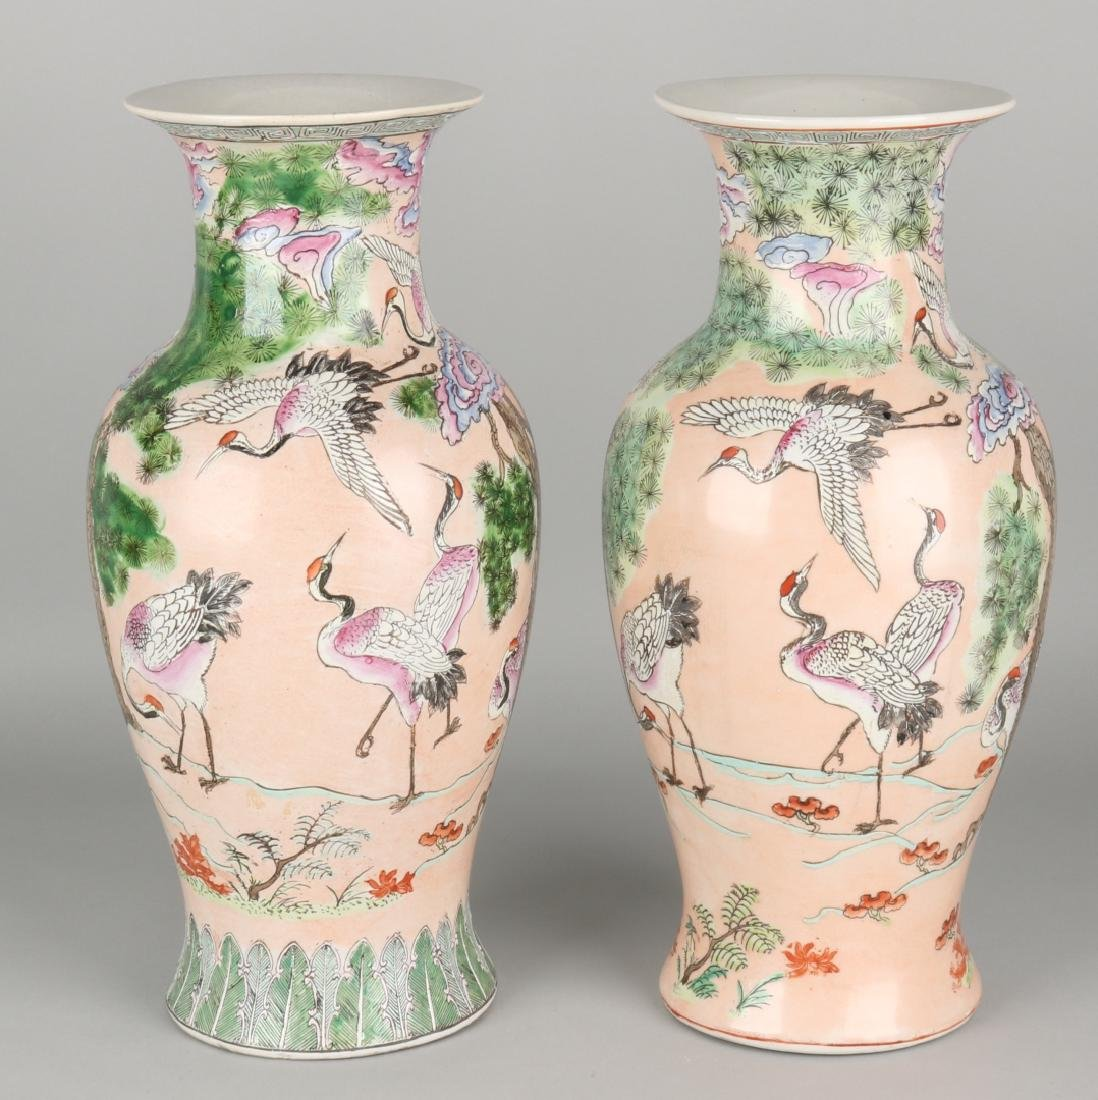 Antique chinese porcelain ornamental vases with fam two antique chinese porcelain ornamental vases with fam floridaeventfo Choice Image